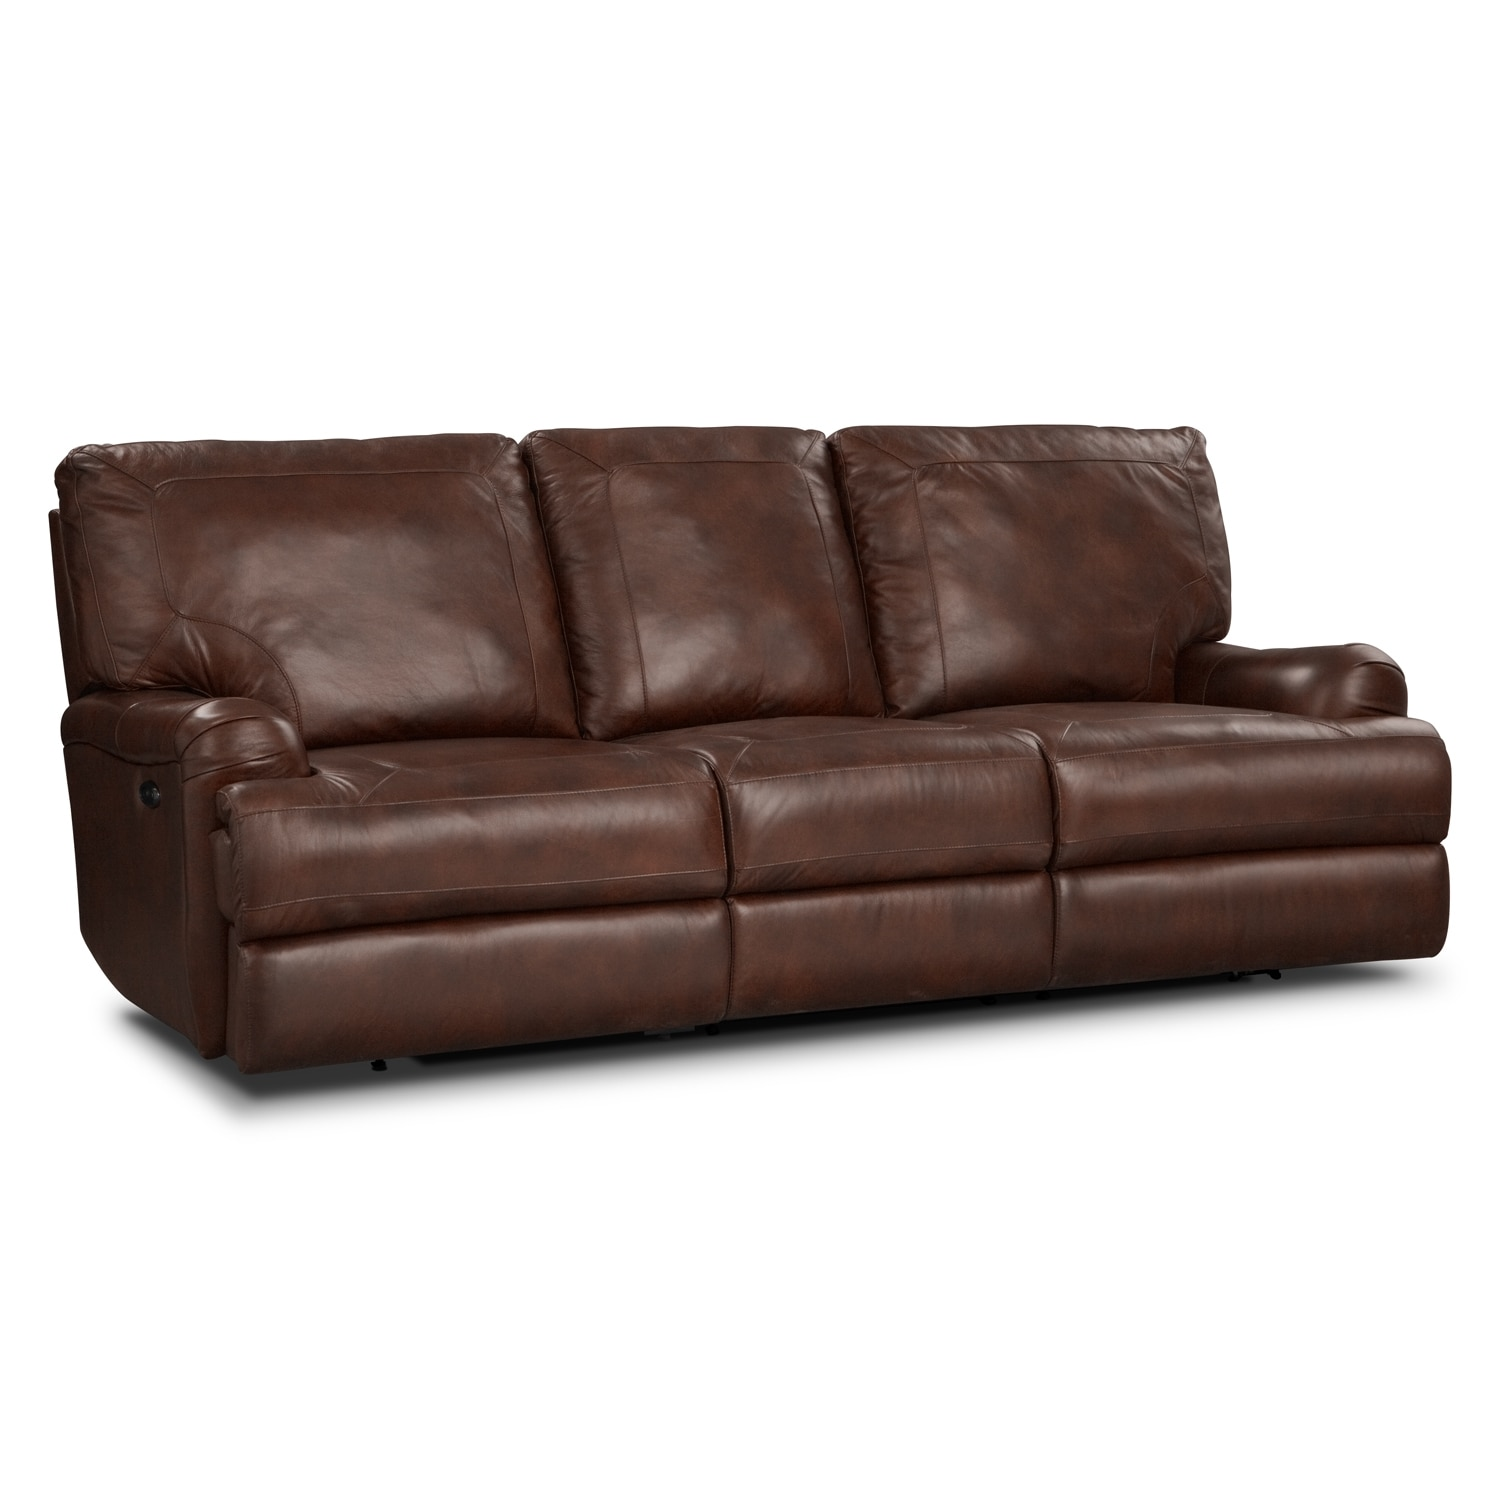 Kingsway Power Reclining Sofa